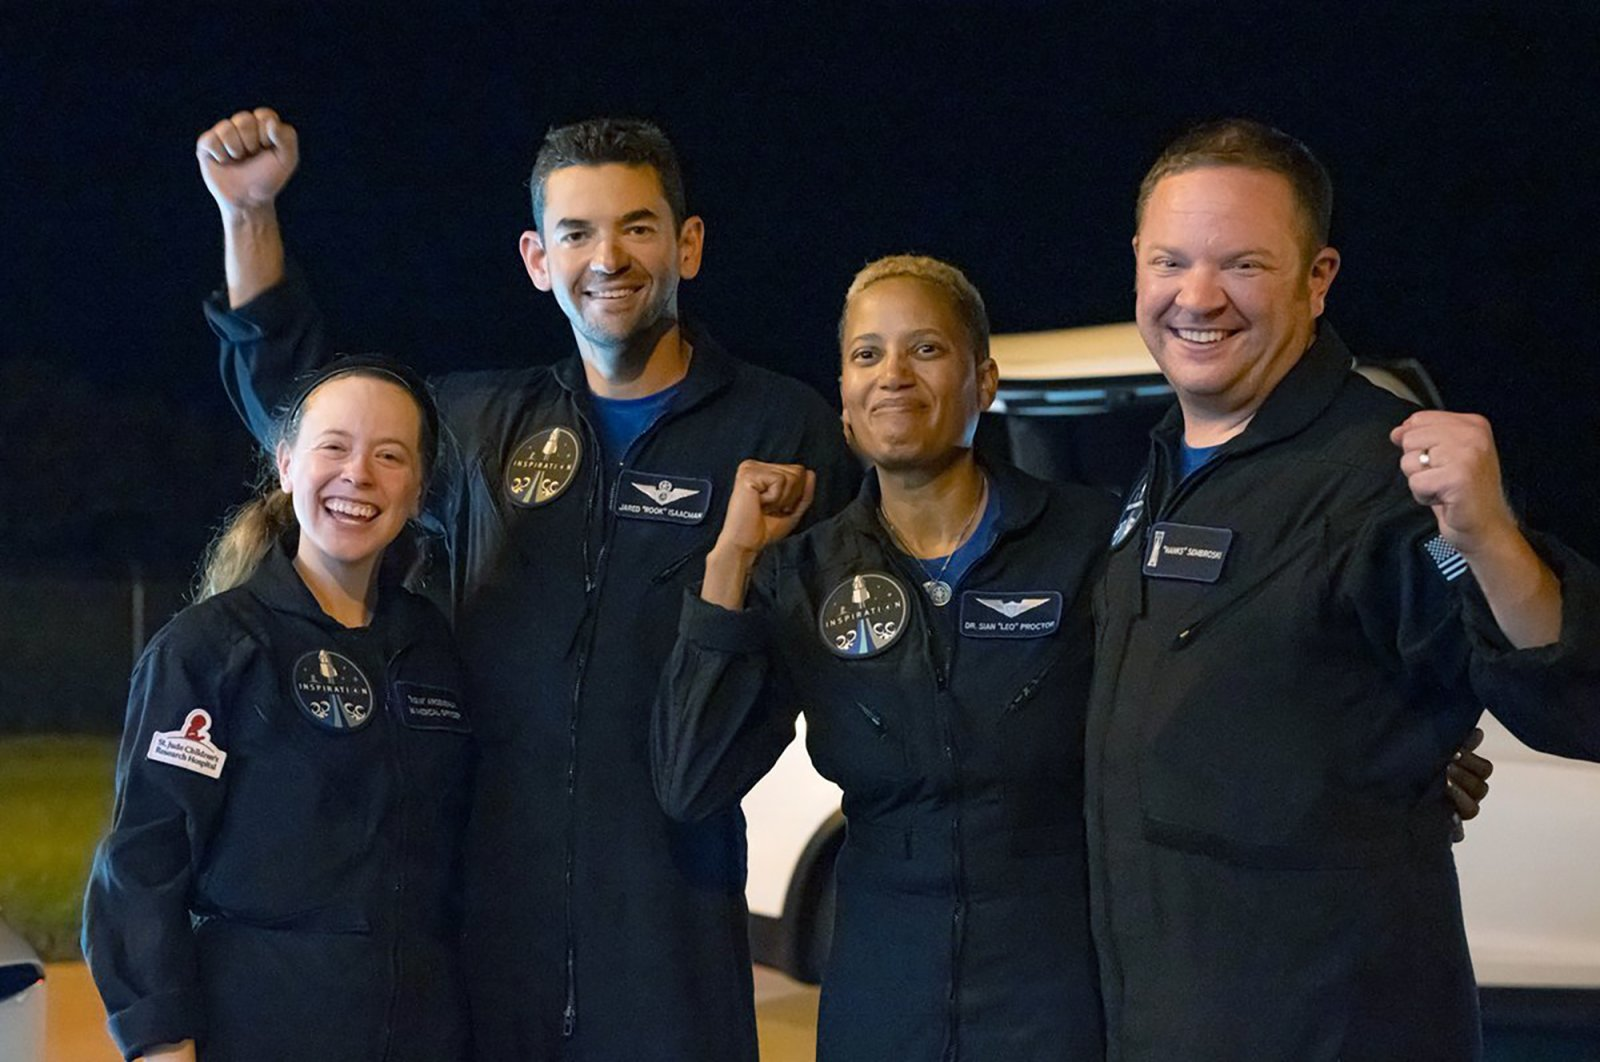 In this image released by Inspiration4, passengers aboard a SpaceX capsule, from left to right, Hayley Arceneaux, Jared Isaacman, Sian Proctor and Chris Sembroski pose after the capsule was recovered following its splashdown in the Atlantic off the Florida coast, Sept. 18, 2021. (Inspiration4 via AP)